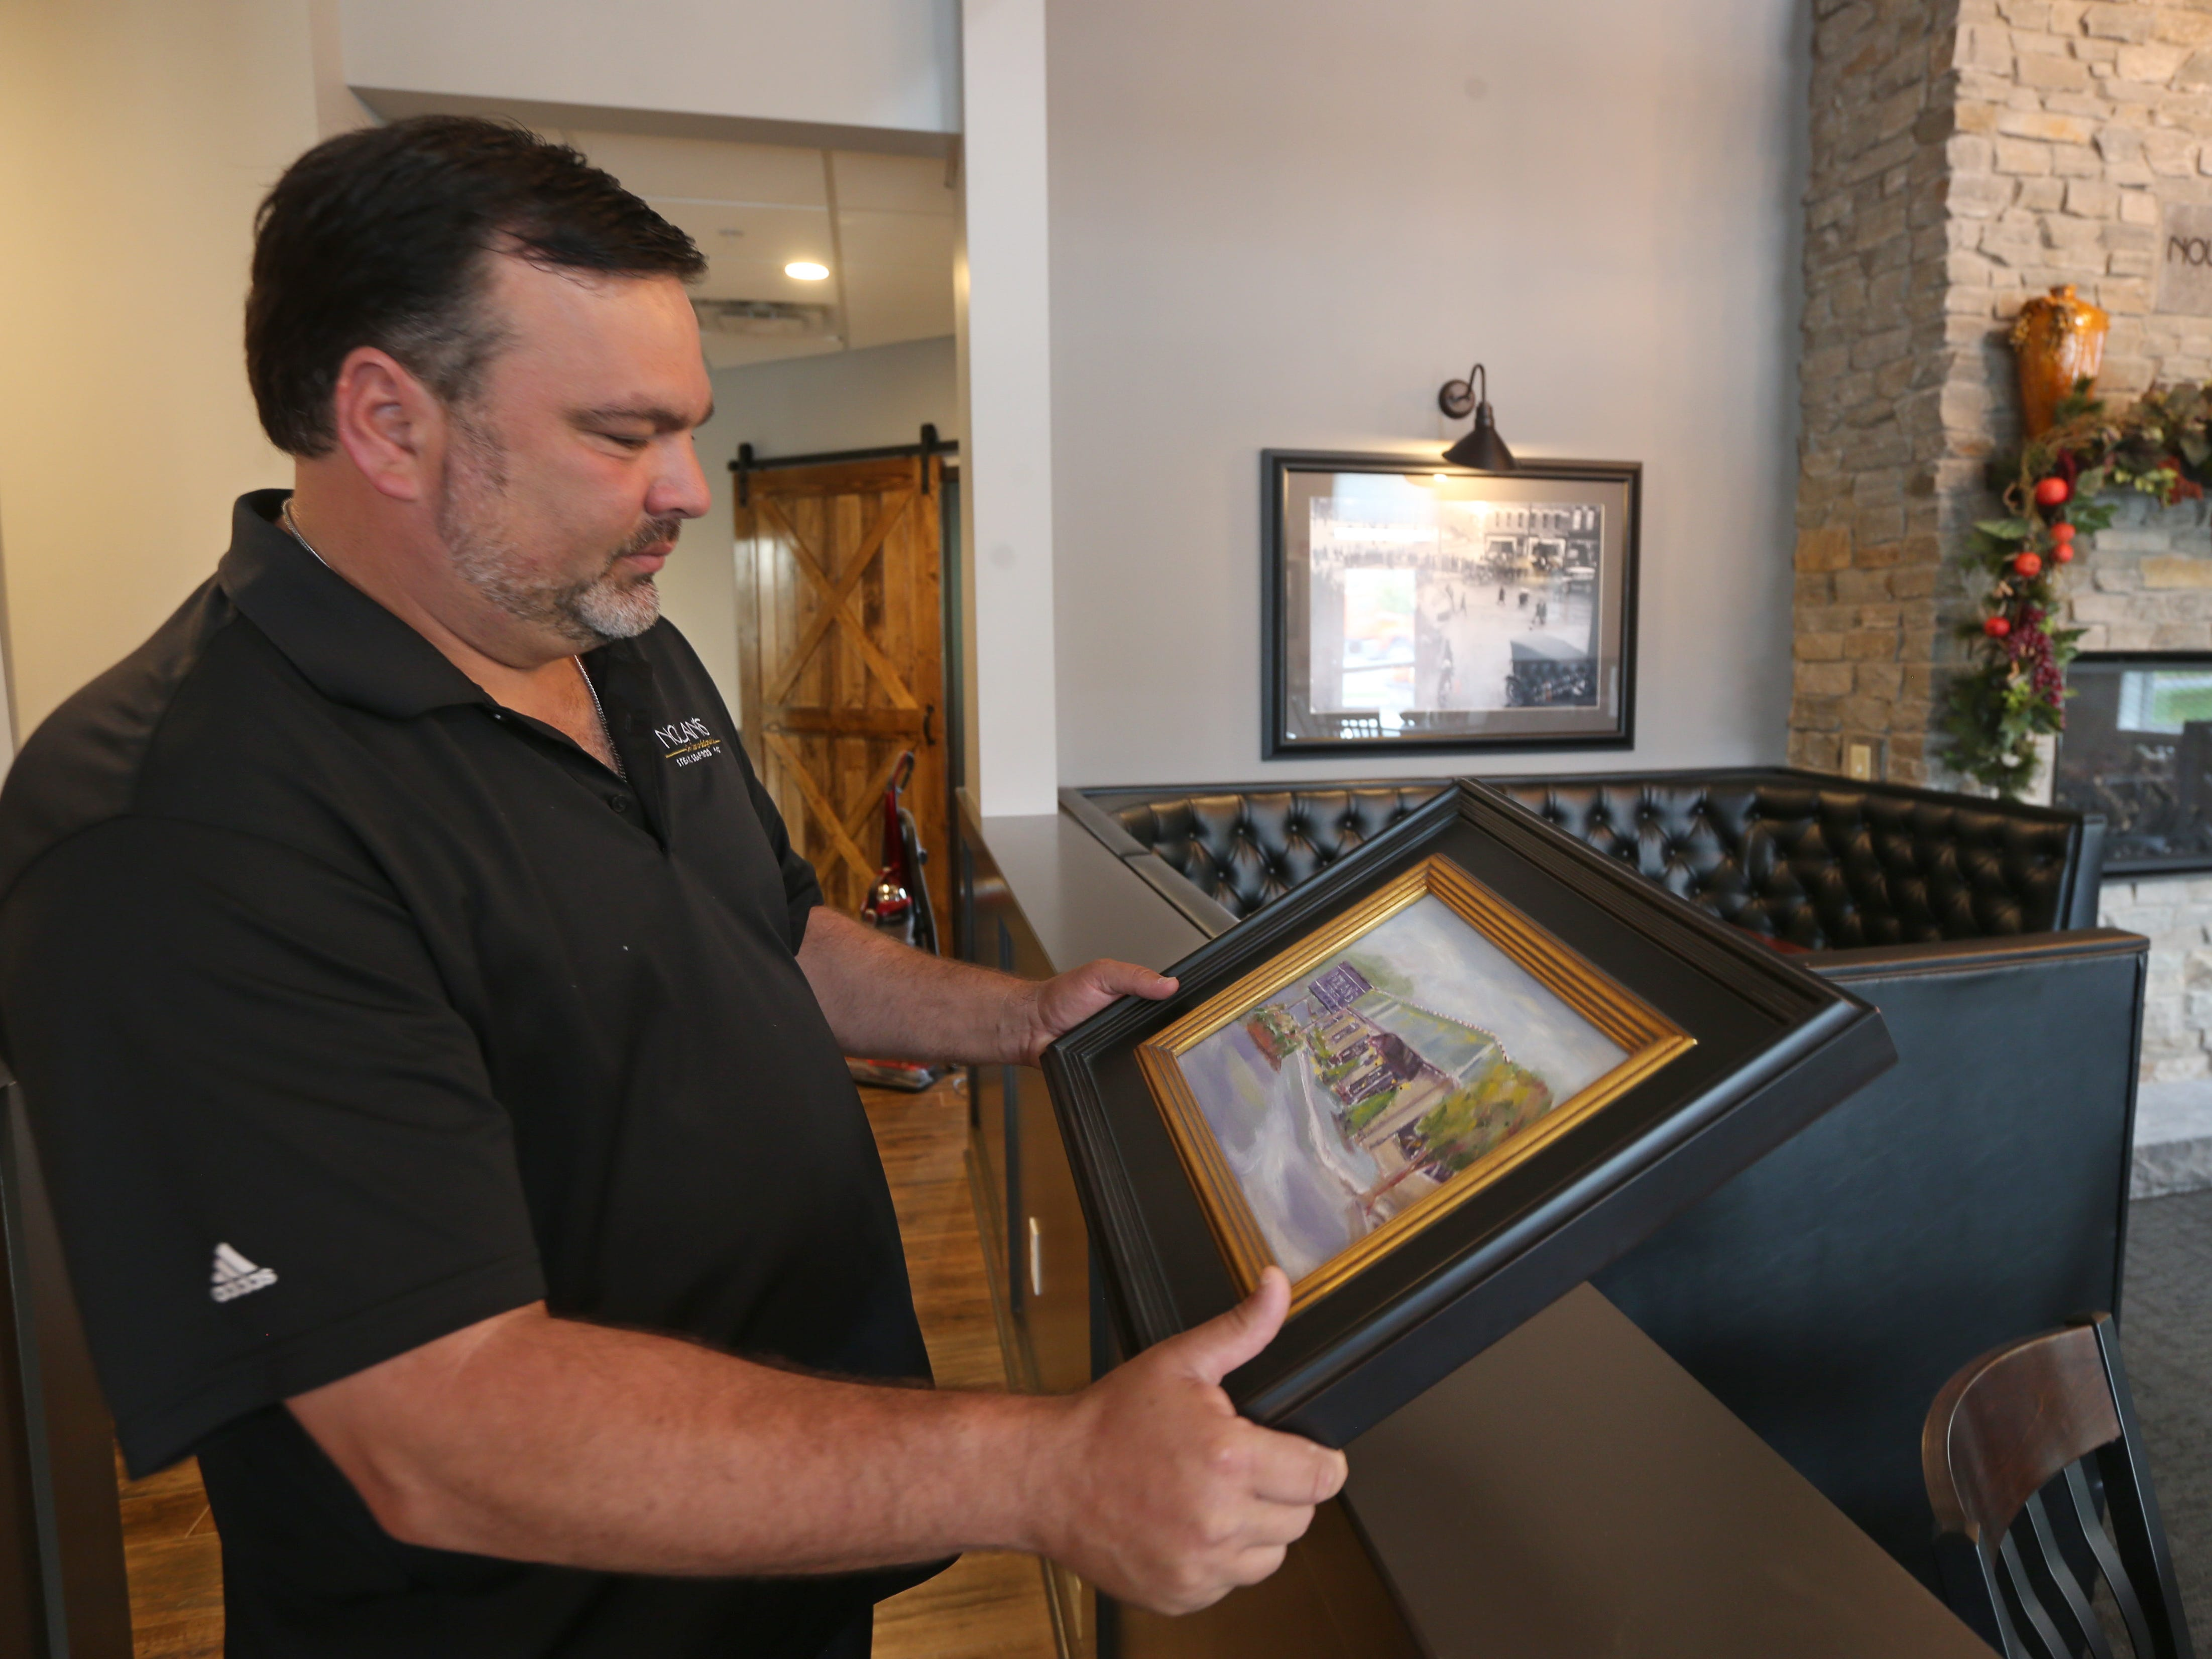 Nick Violas, owner of Nolan's, looks over a painting of the previous Nolan's building that was given to him, while walking around his new Nolan's in Canandaigua.